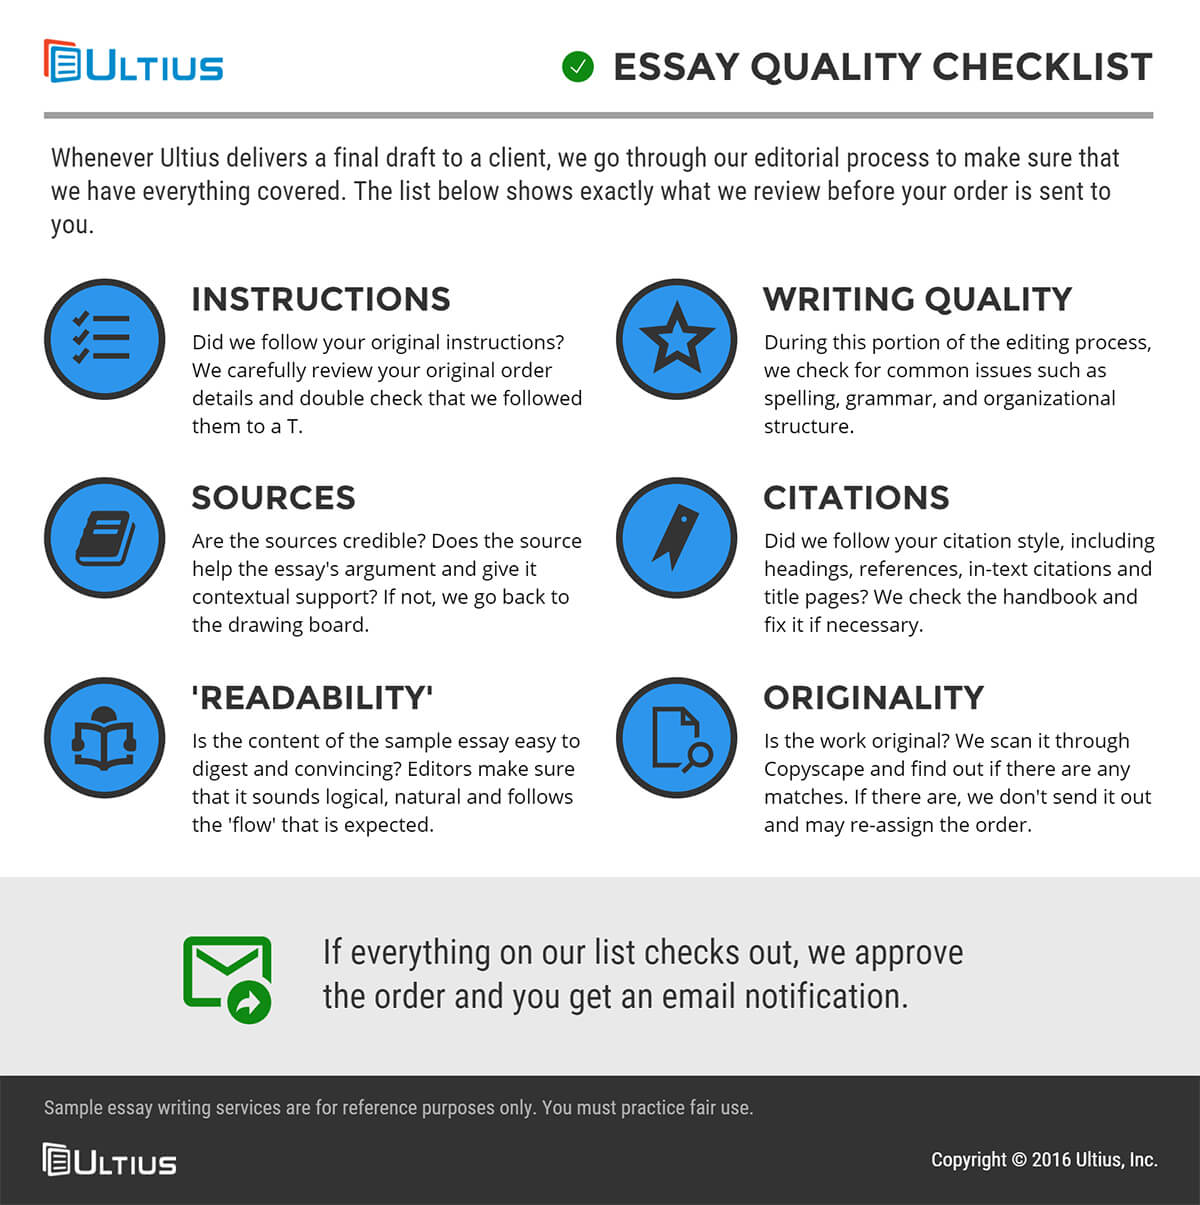 Essay On High School Dropouts Purchased Essay Quality Checklist Essay Thesis Statement Example also English Literature Essays Buy Essay Online   Original  American Writers  Ultius The Yellow Wallpaper Essays